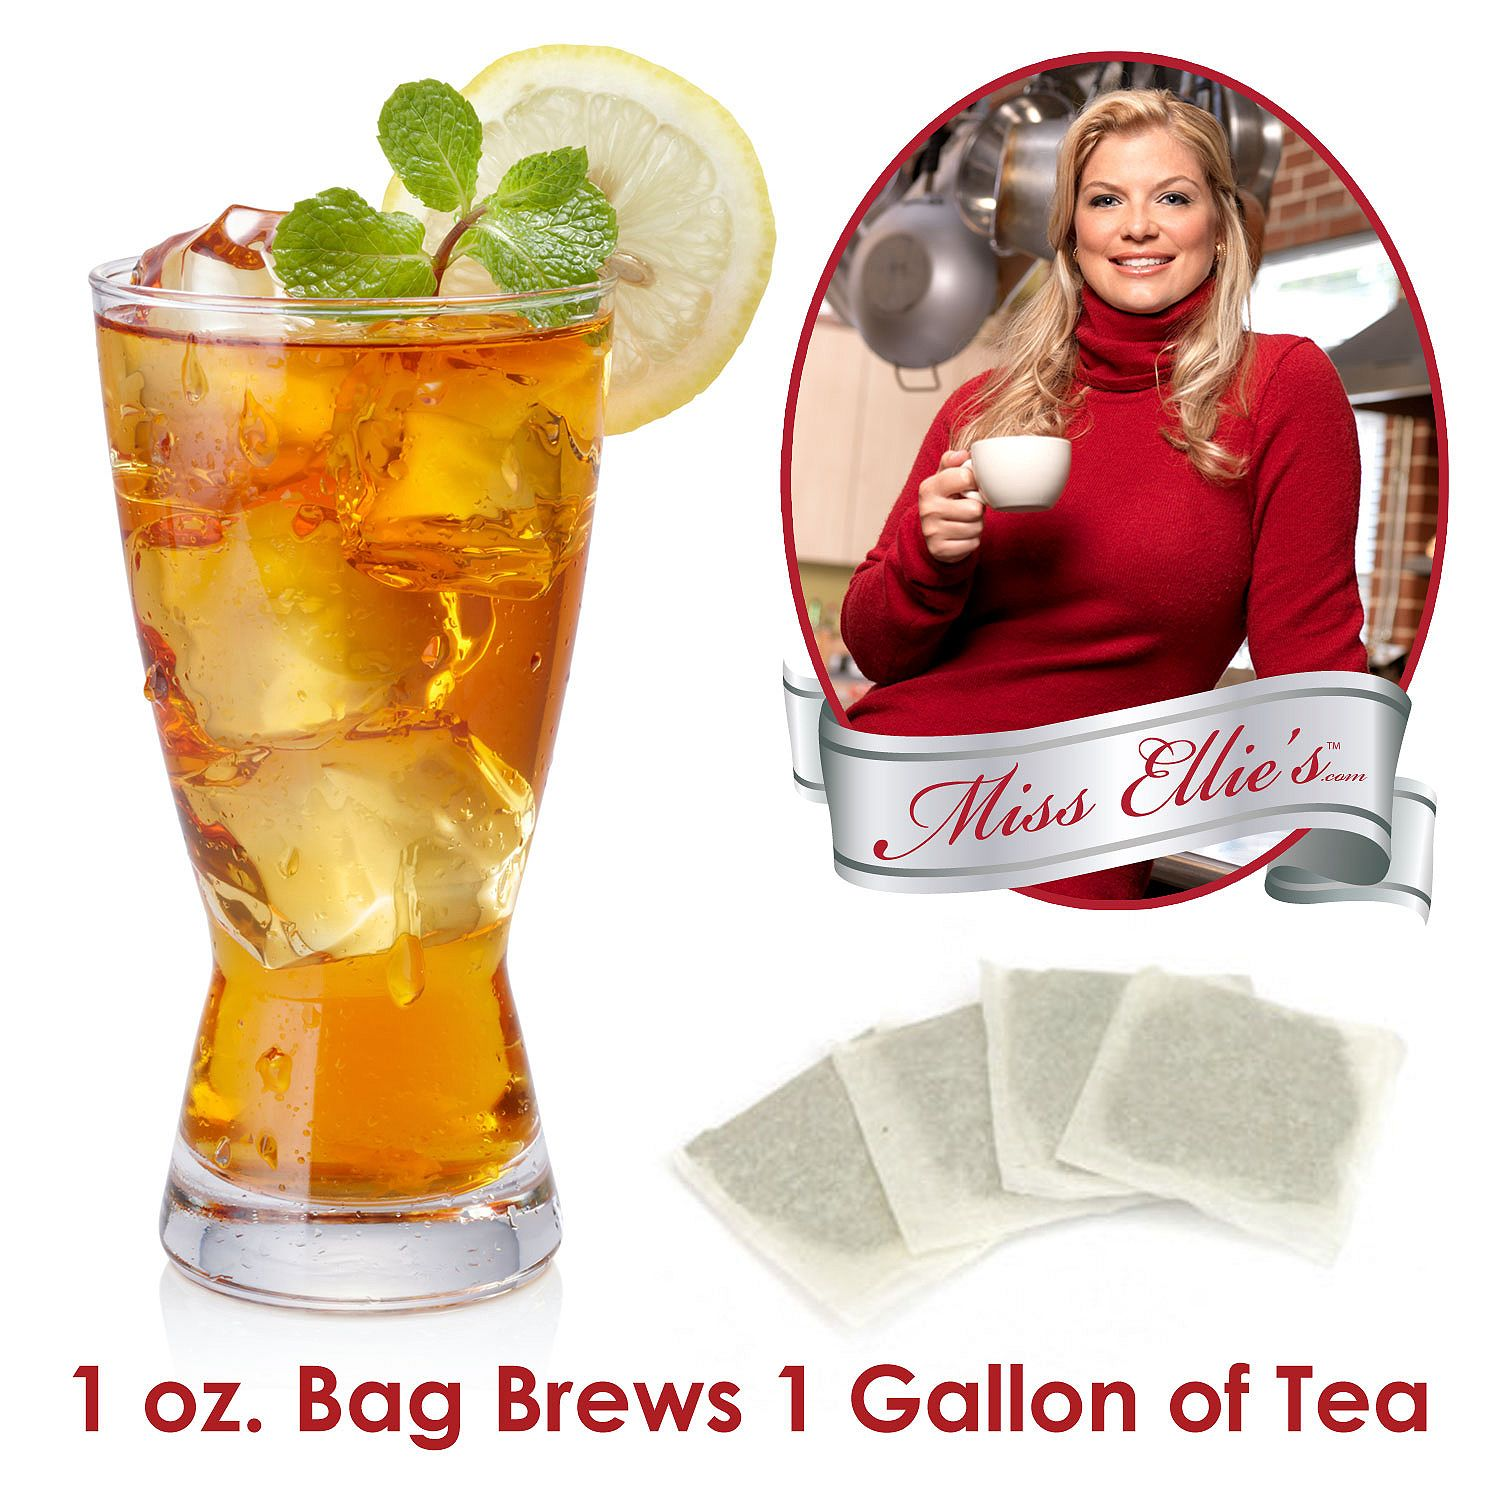 Miss Ellie's Premium Southern Classic Tea Bags, Choose Size